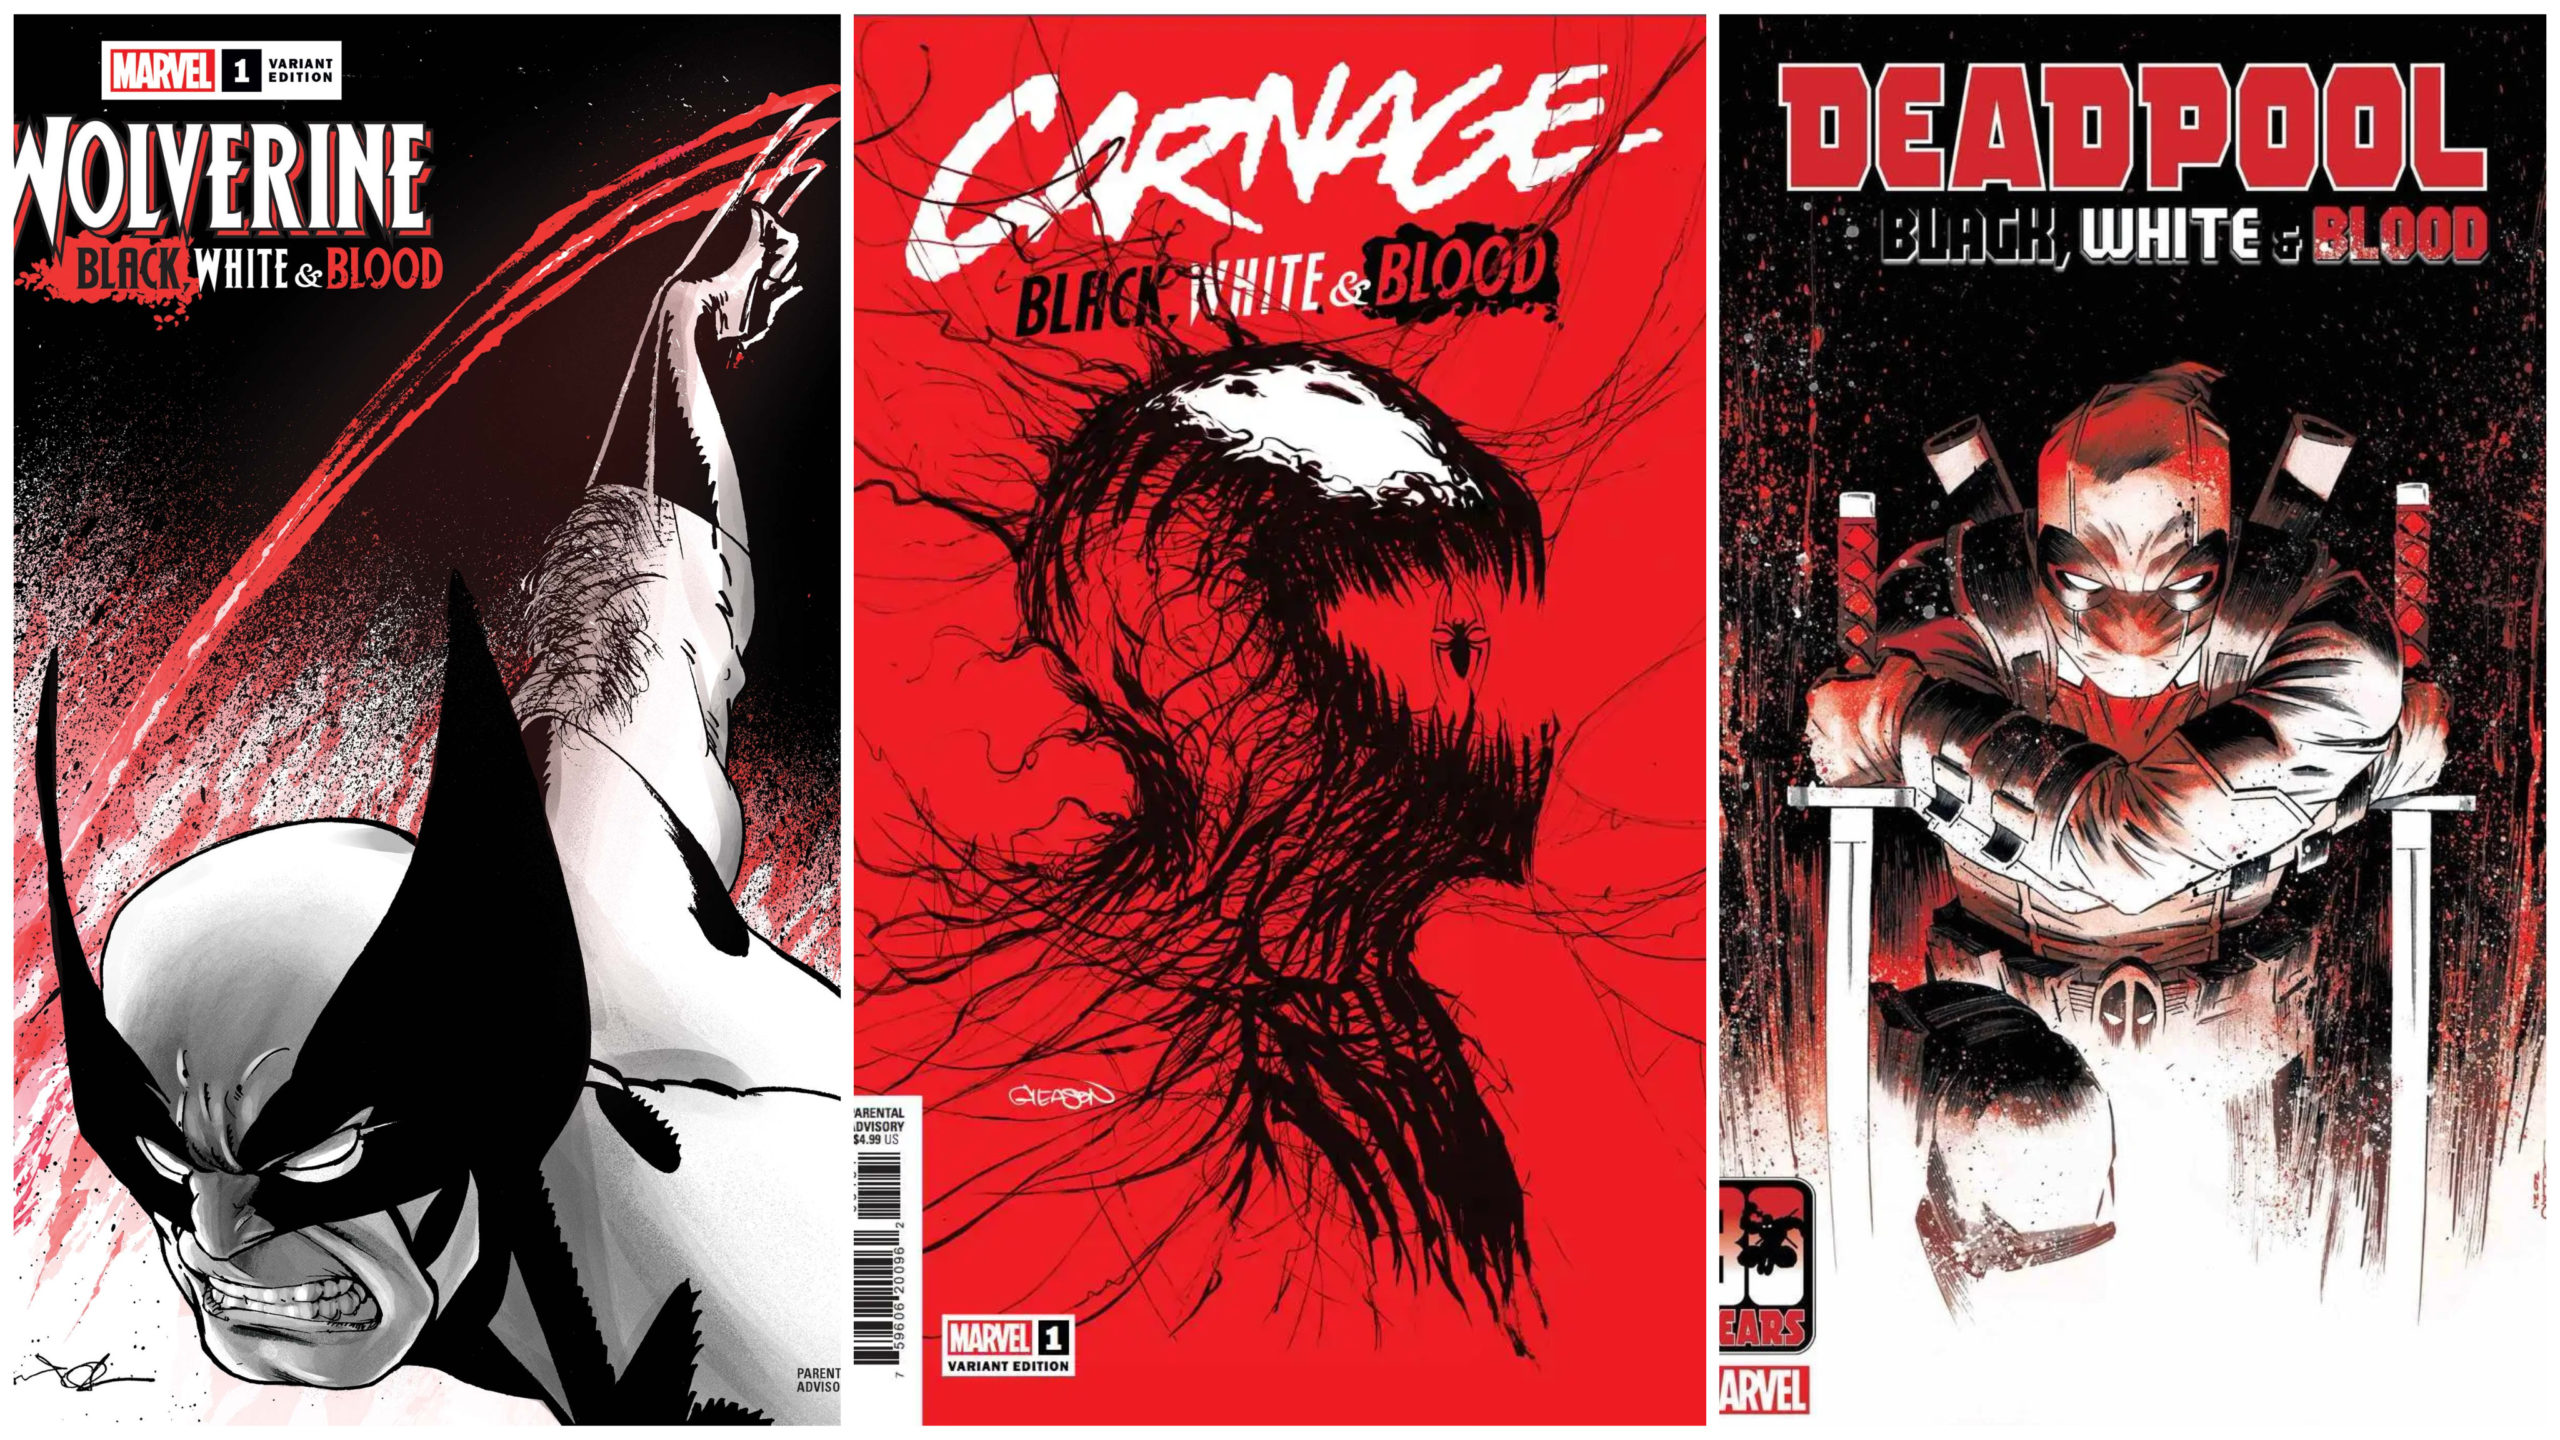 Black, White, and Blood Covers